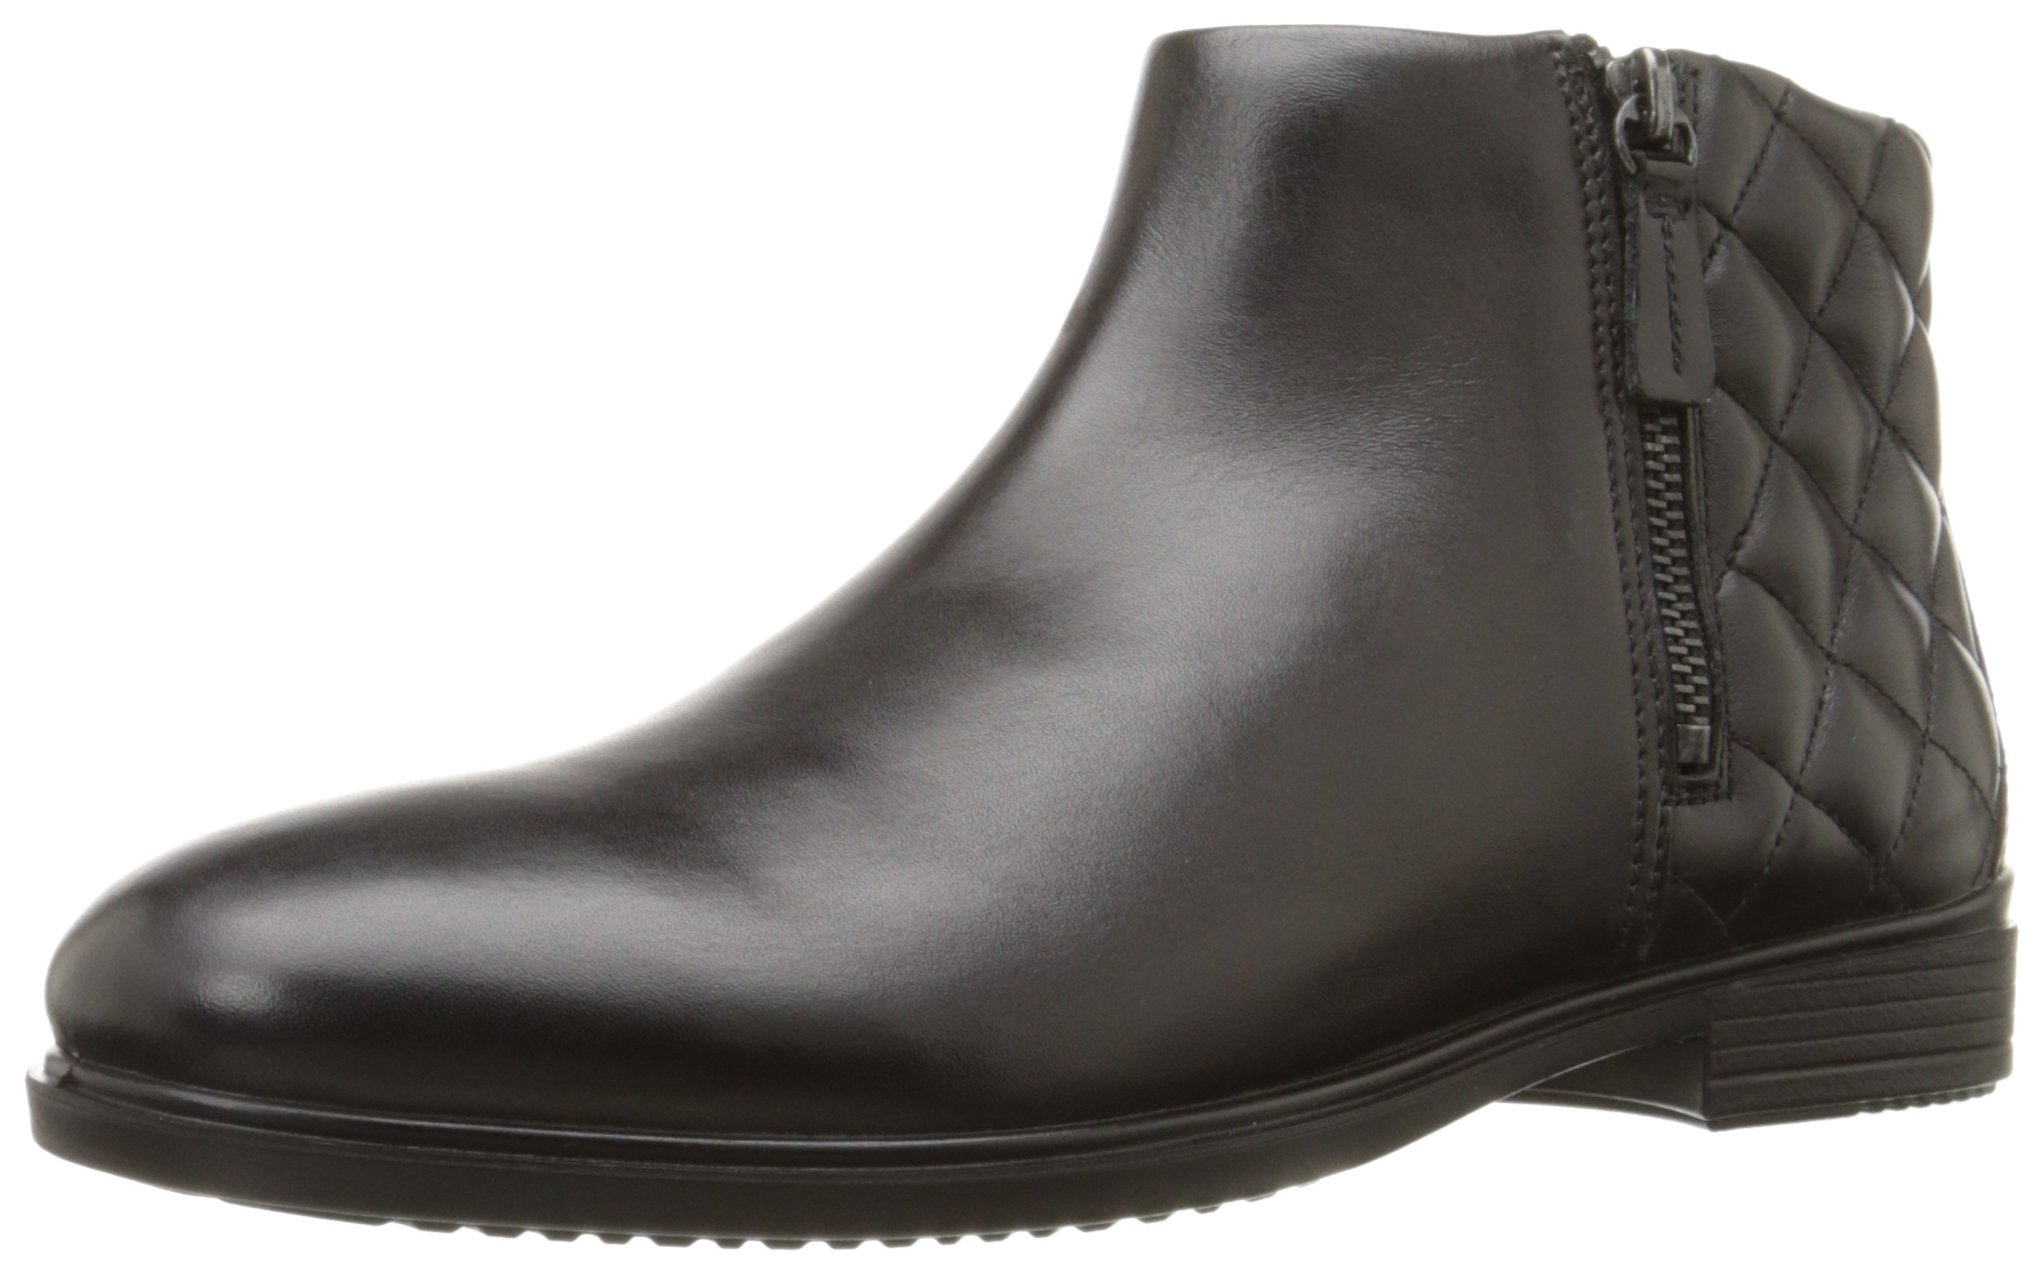 Ecco Footwear Womens Touch 15 Quilted Bootie Chelsea Boot, Black/Black, 39 EU/8-8.5 M US